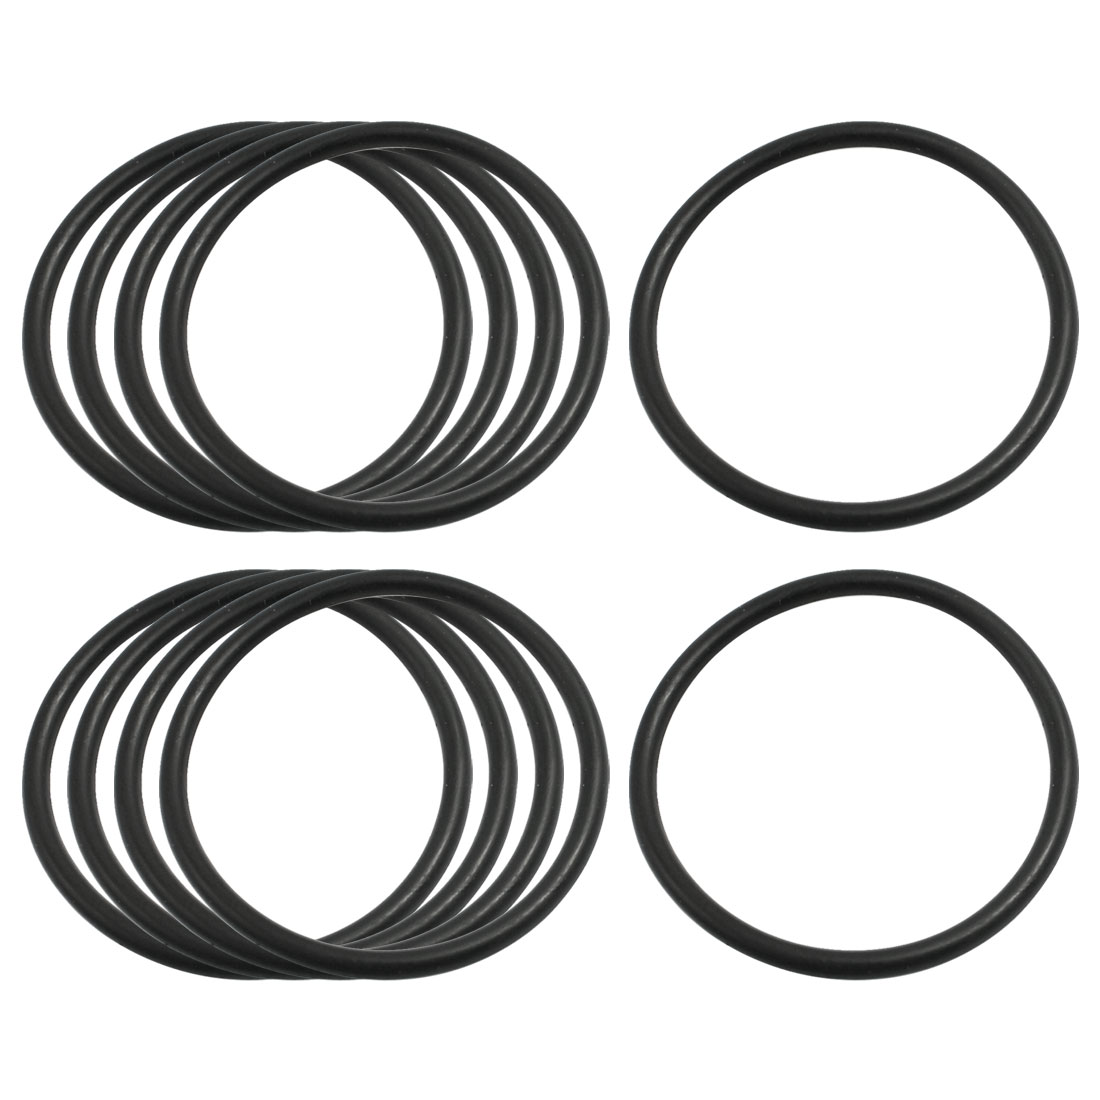 2.4mm x 41mm Nitrile Rubber O Type Sealing Ring Gasket Grommets Black 10Pcs